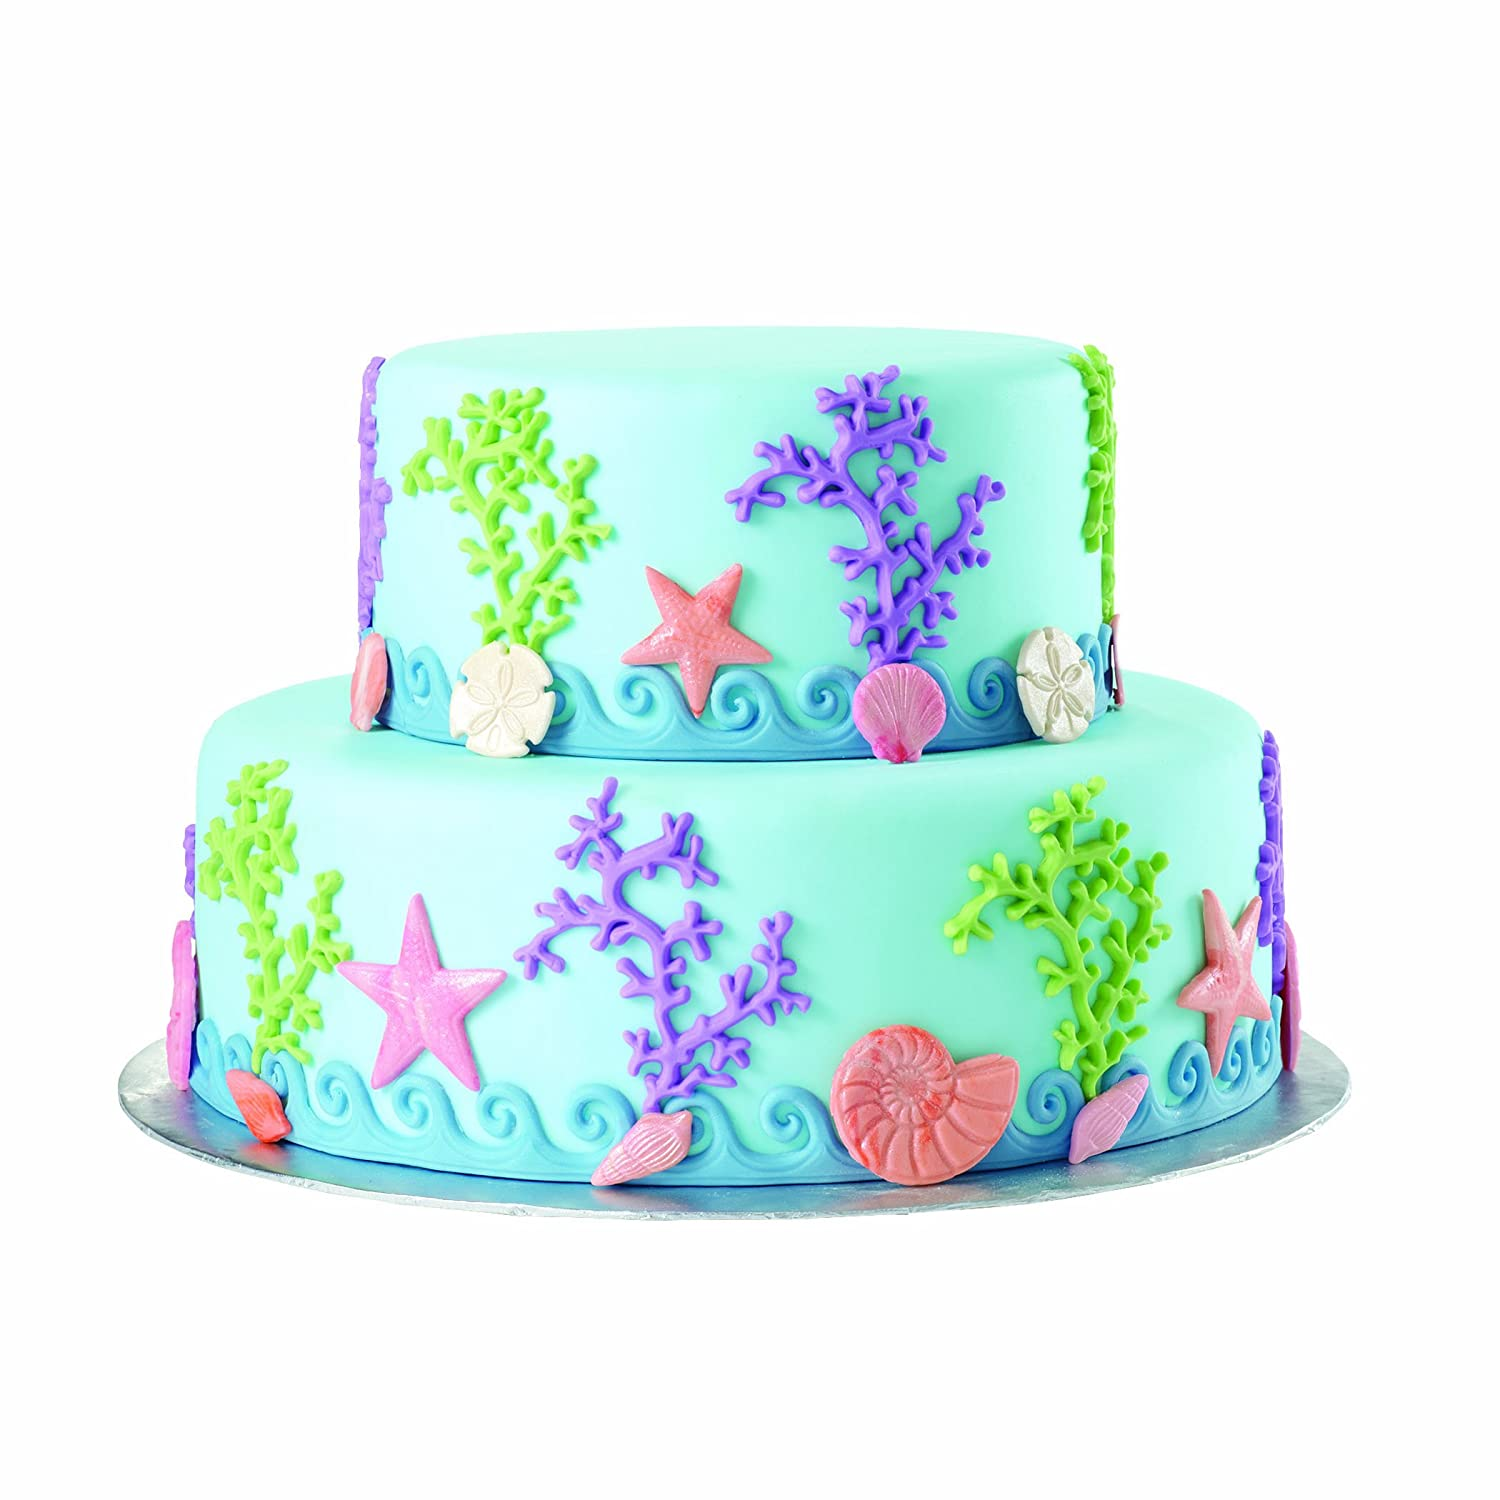 sealife-theme-mold-fondant